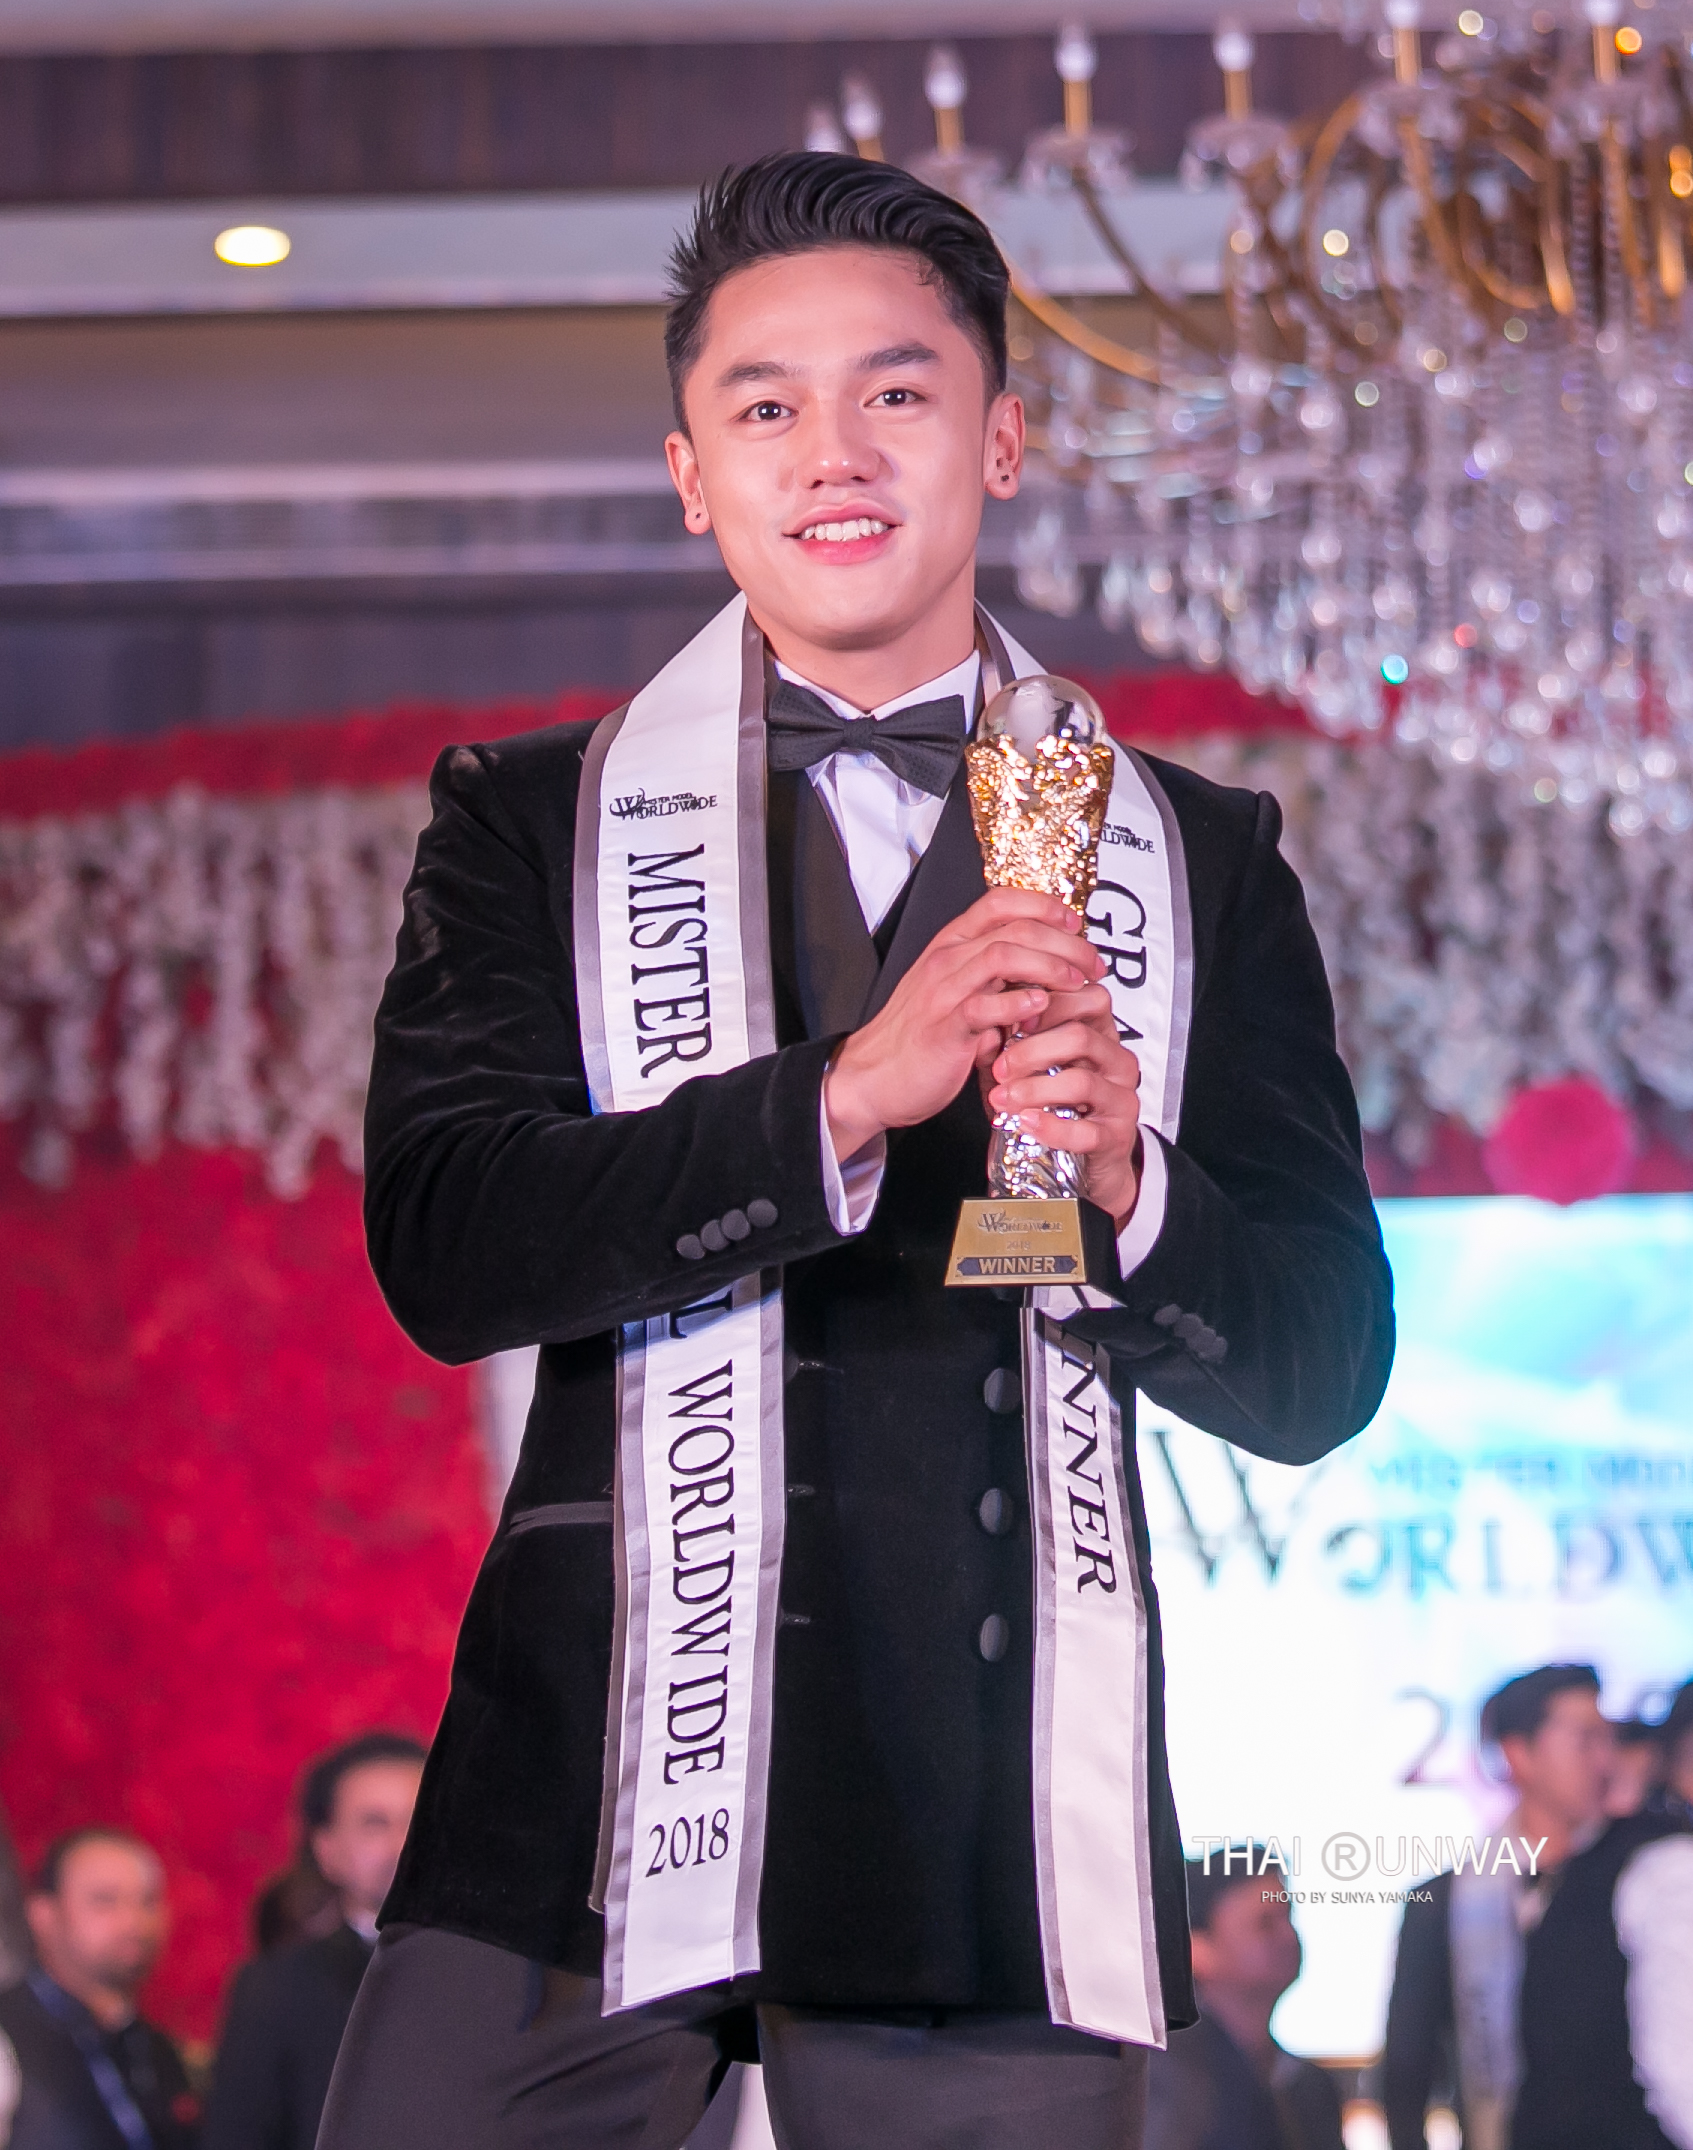 Mr Philippines, Carlo Pasion's winning moment at Mister Model Worldwide 2018 contest. Picture by Thai Runway / Sunya Yamaka